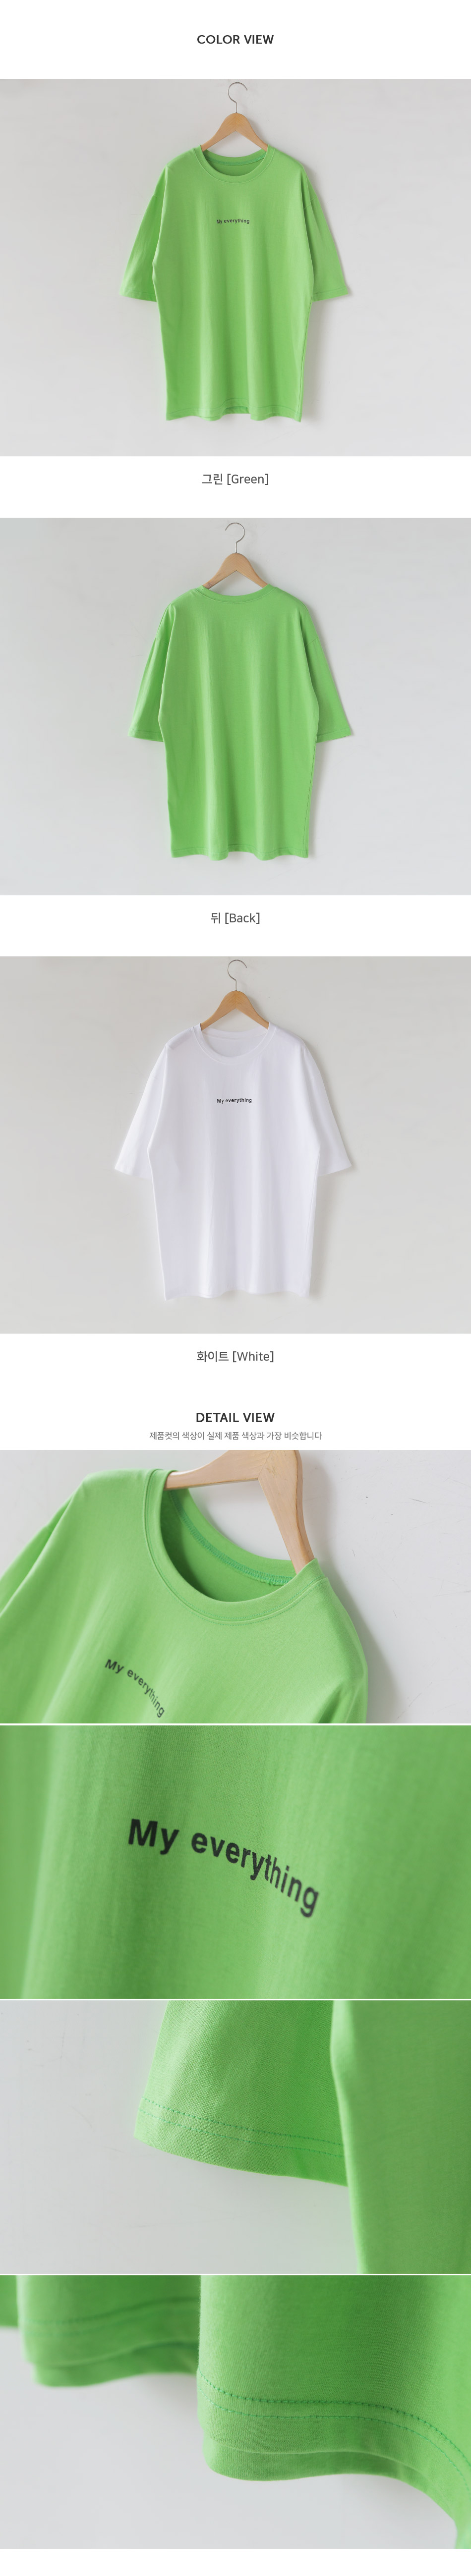 Everly Lettering T-shirt